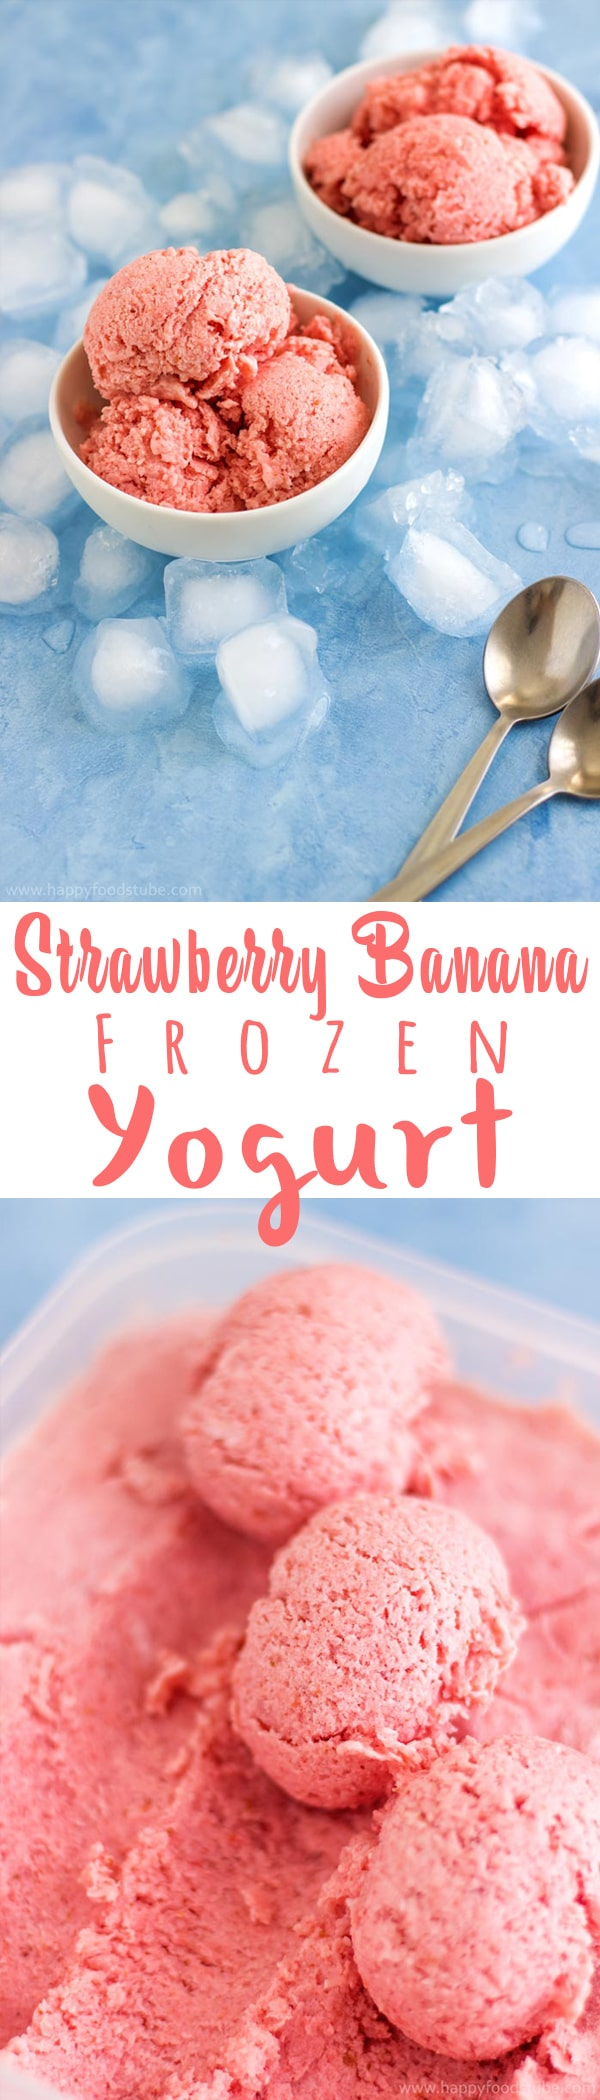 Strawberry Banana Frozen Yogurt is a healthy alternative to ice cream! You need only 3 ingredients to make this frozen dessert recipe! | happyfoodstube.com